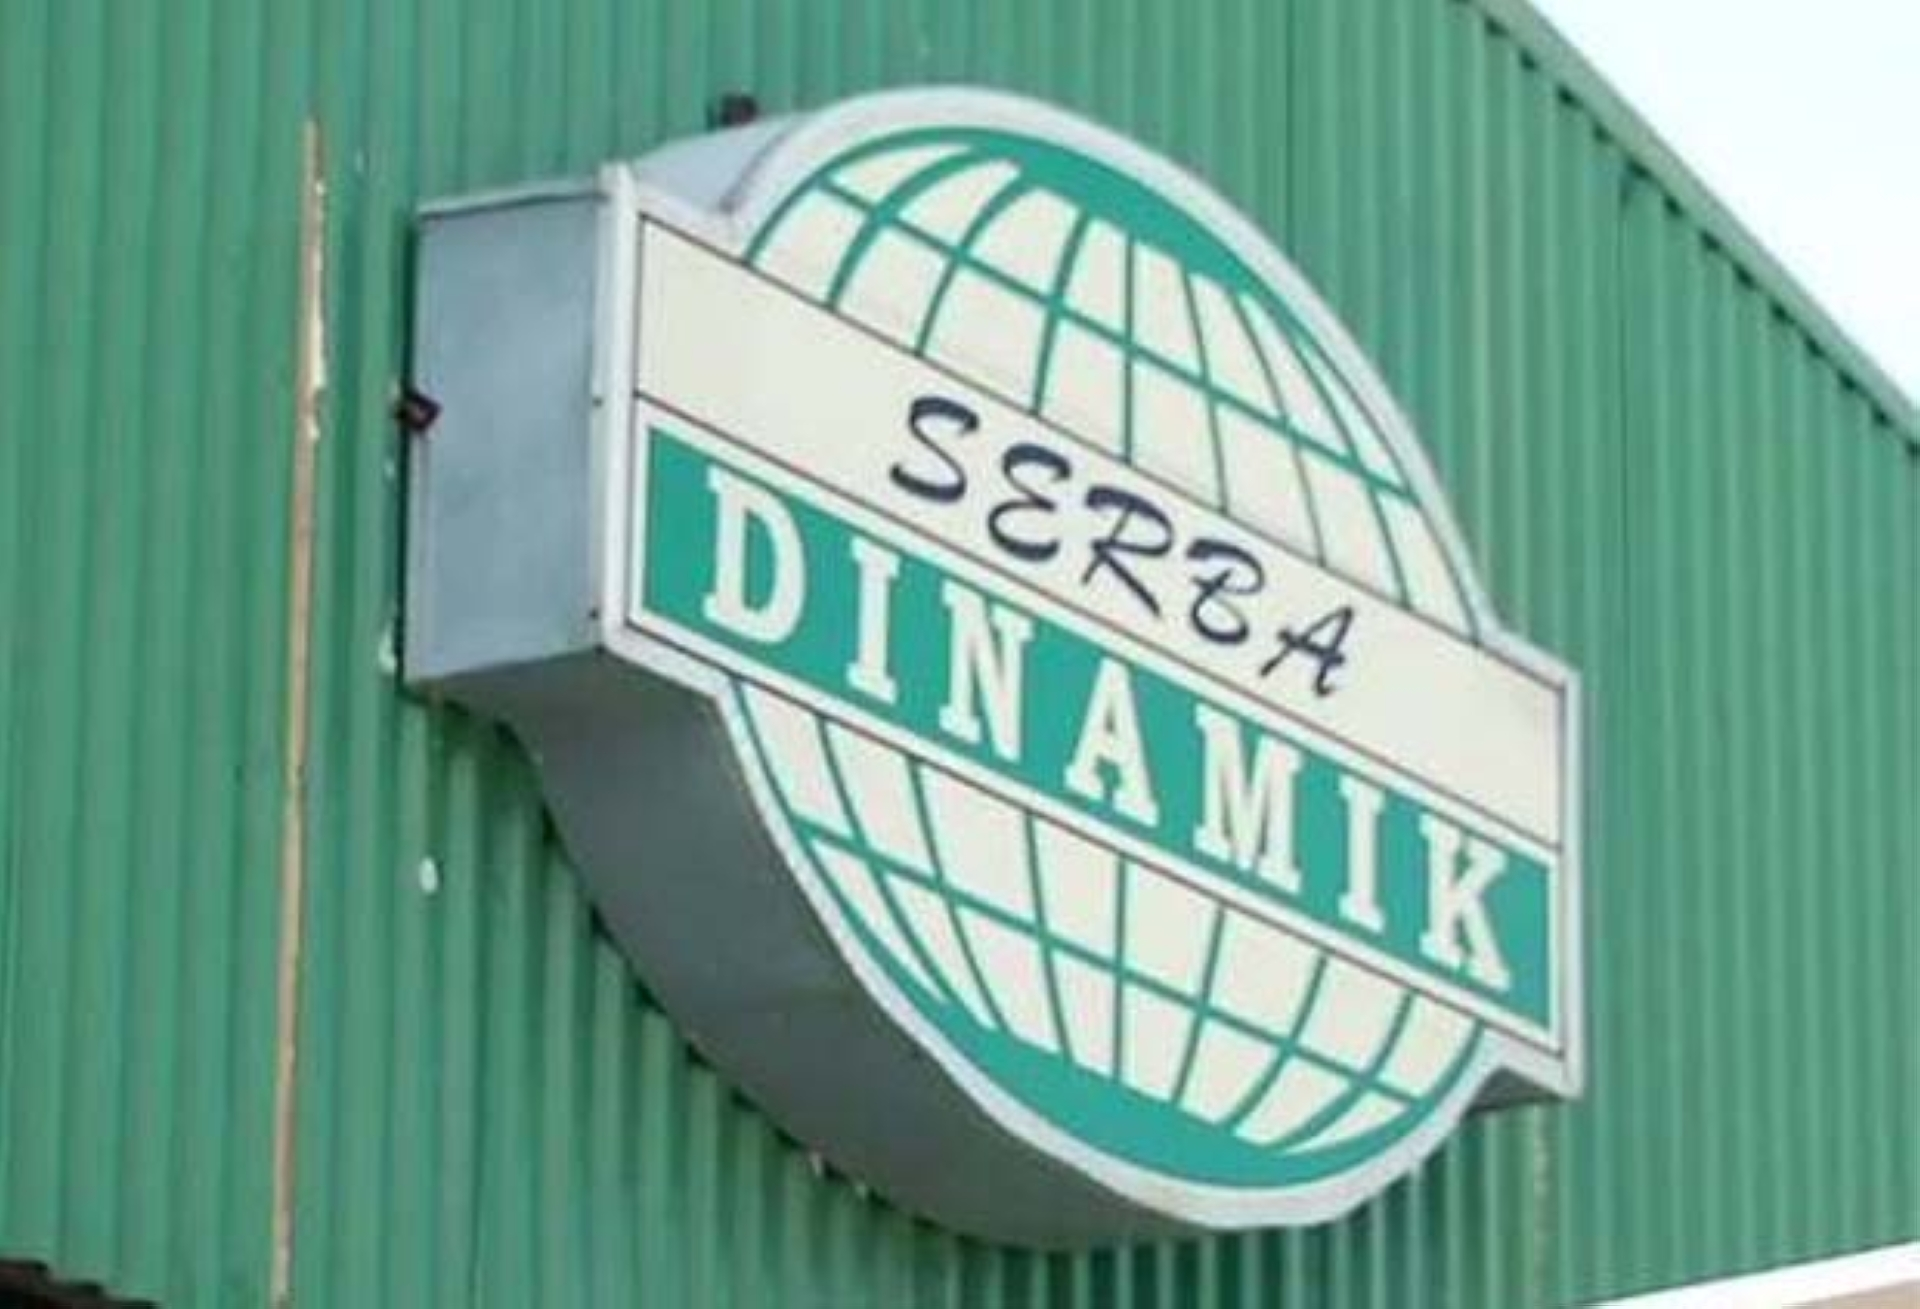 In a filing with Bursa Malaysia yesterday, Serba Dinamik said its unit, Serba Dinamik Sdn Bhd (SDSB), had won an EPCC contract in Turkmenistan to deliver supplementary equipment and automation of a 214-km gas pipeline for state concern Turkmengas.